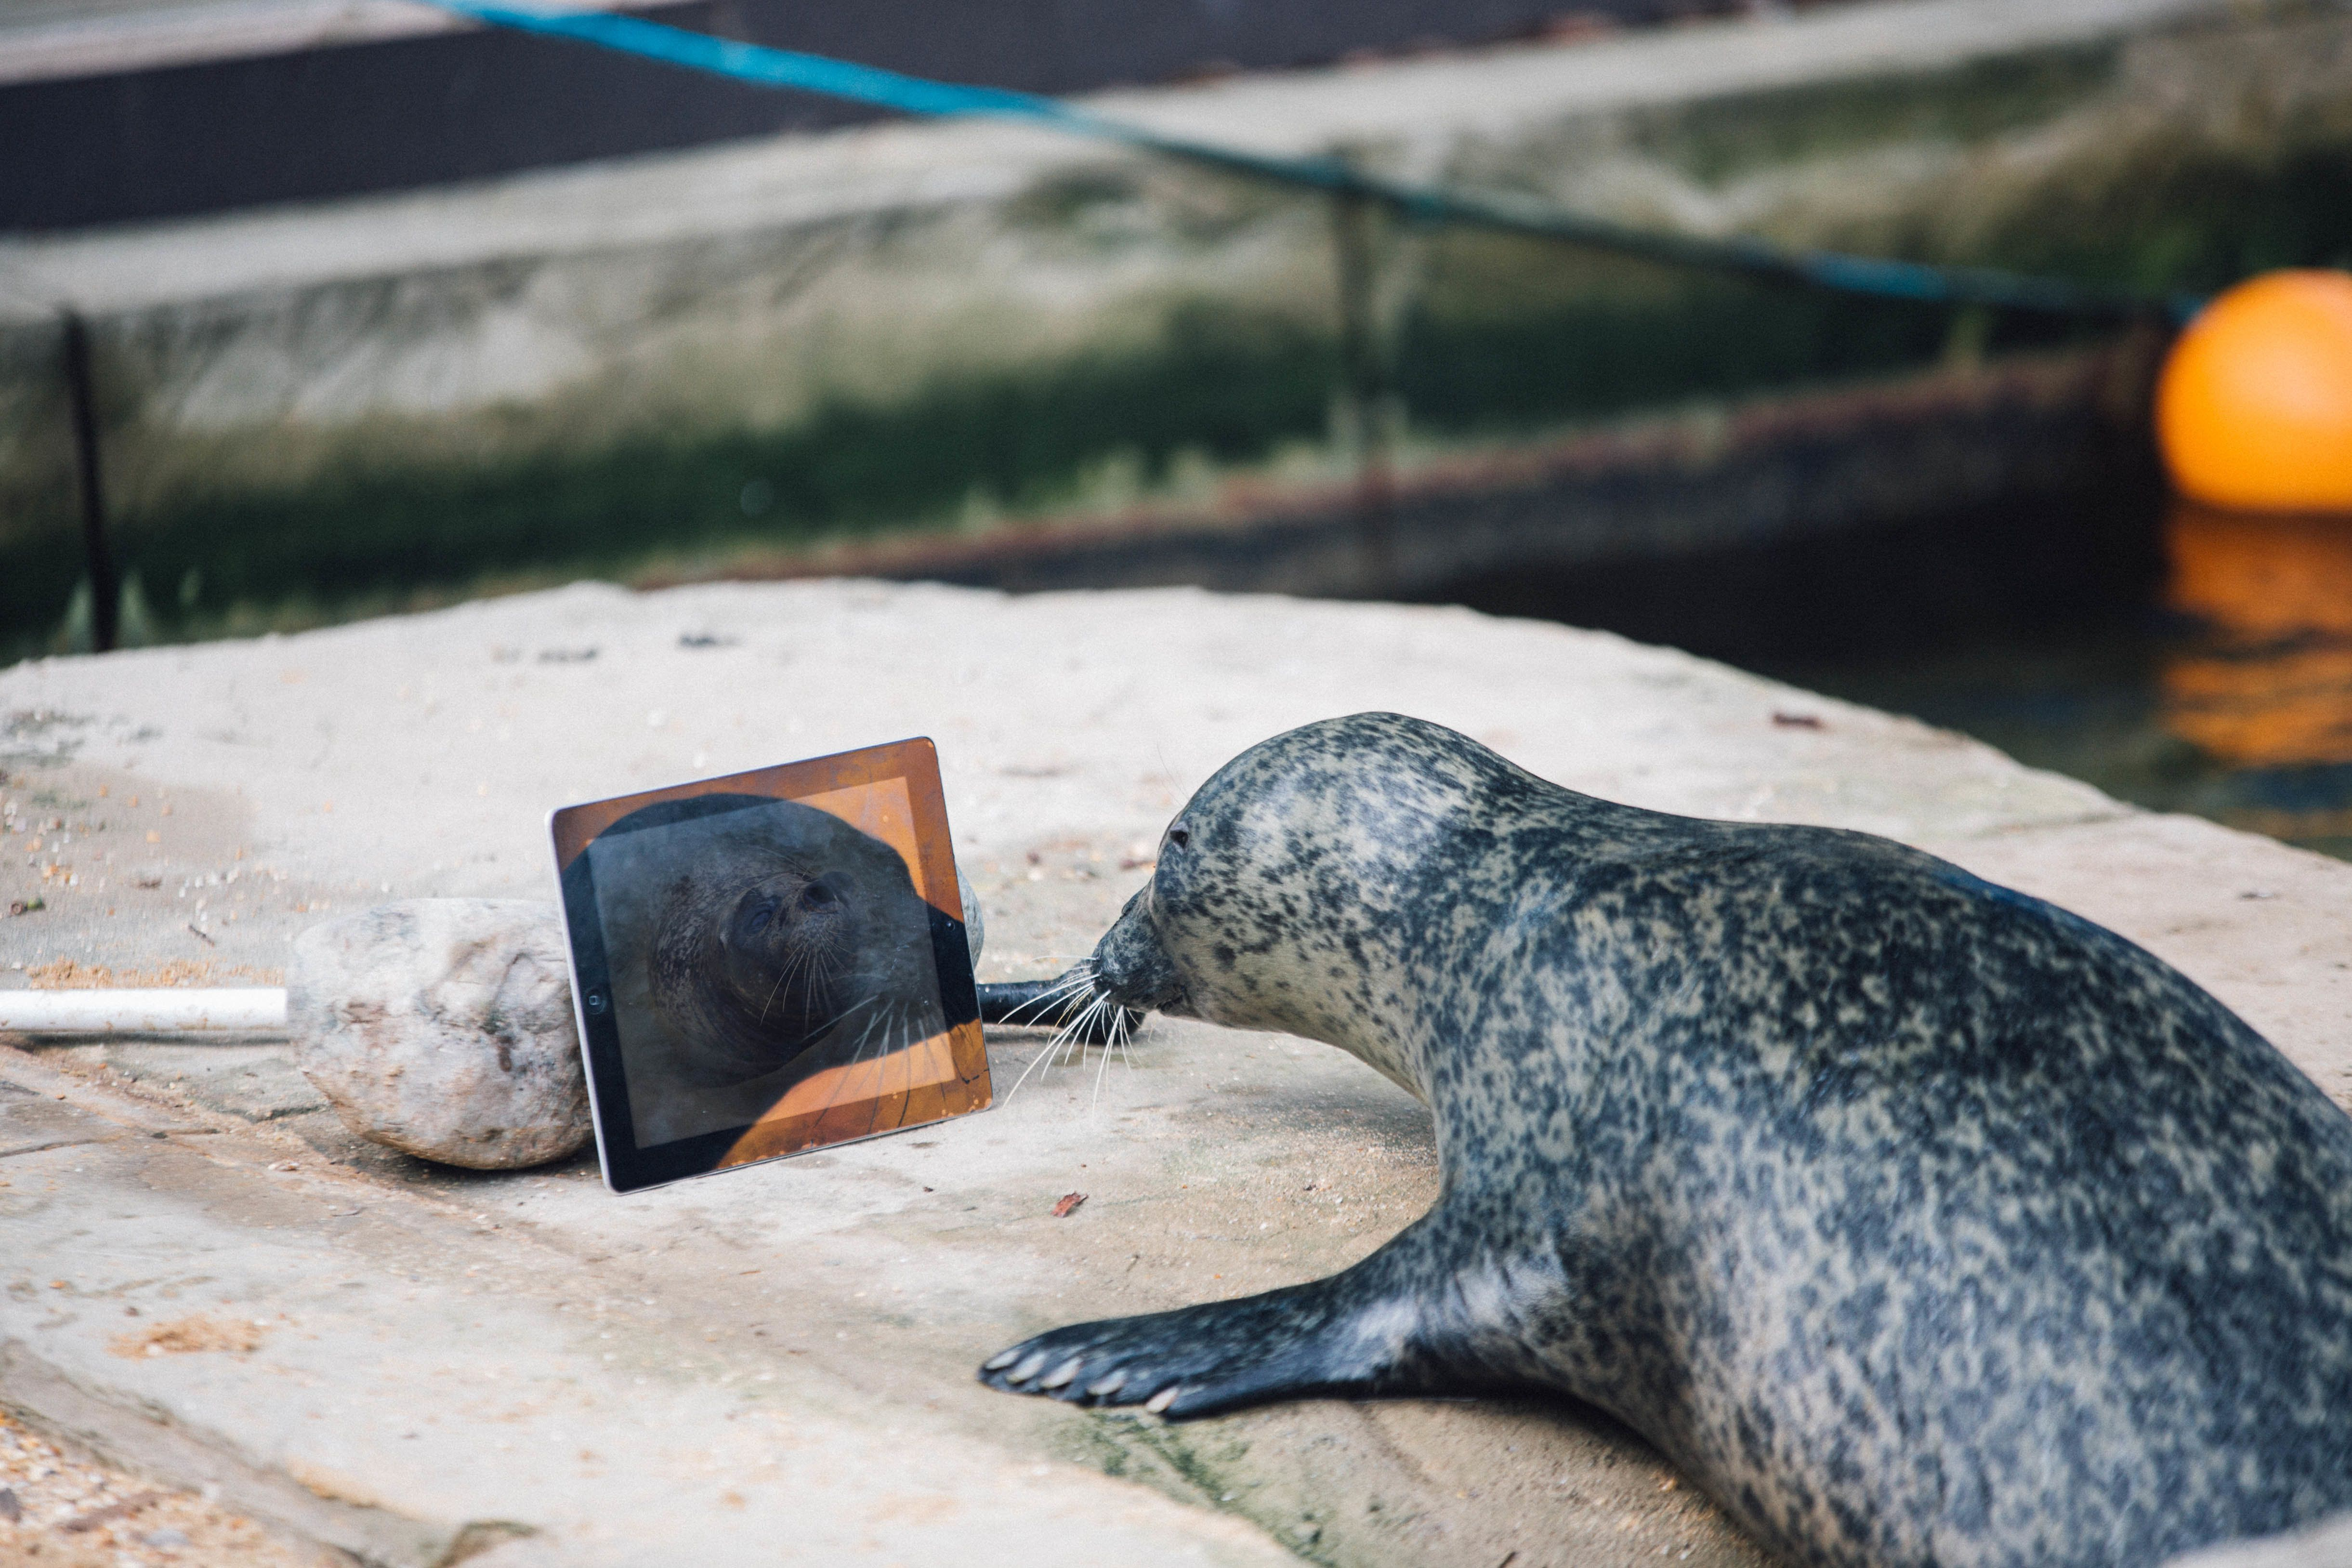 Sija a female harbour seal on FaceTime watching Babyface and the other male seals